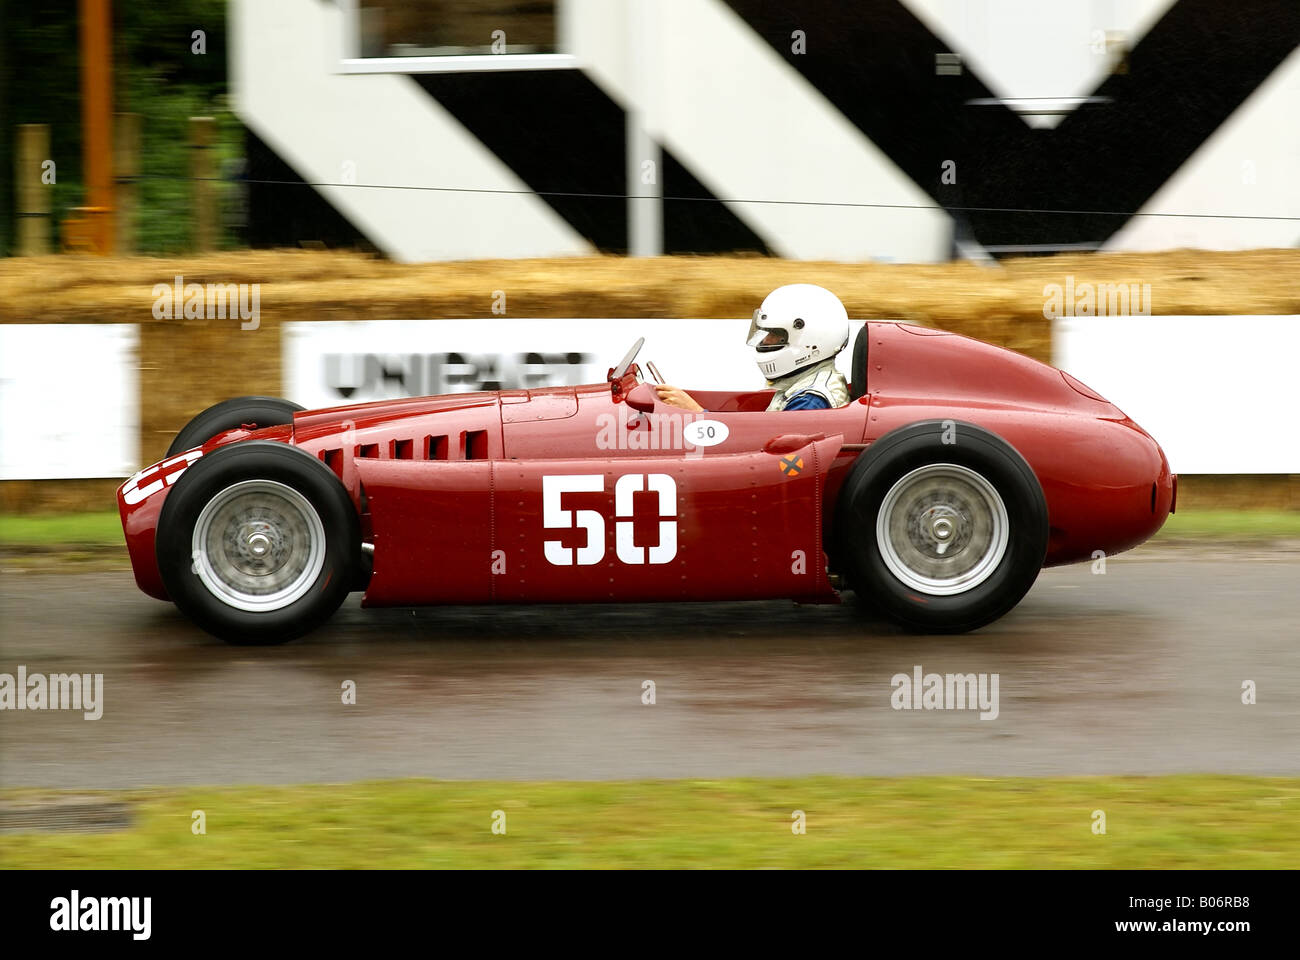 https://c8.alamy.com/comp/B06RB8/a-1954-lancia-d50-formula-one-car-at-the-goodwood-festival-of-speed-B06RB8.jpg